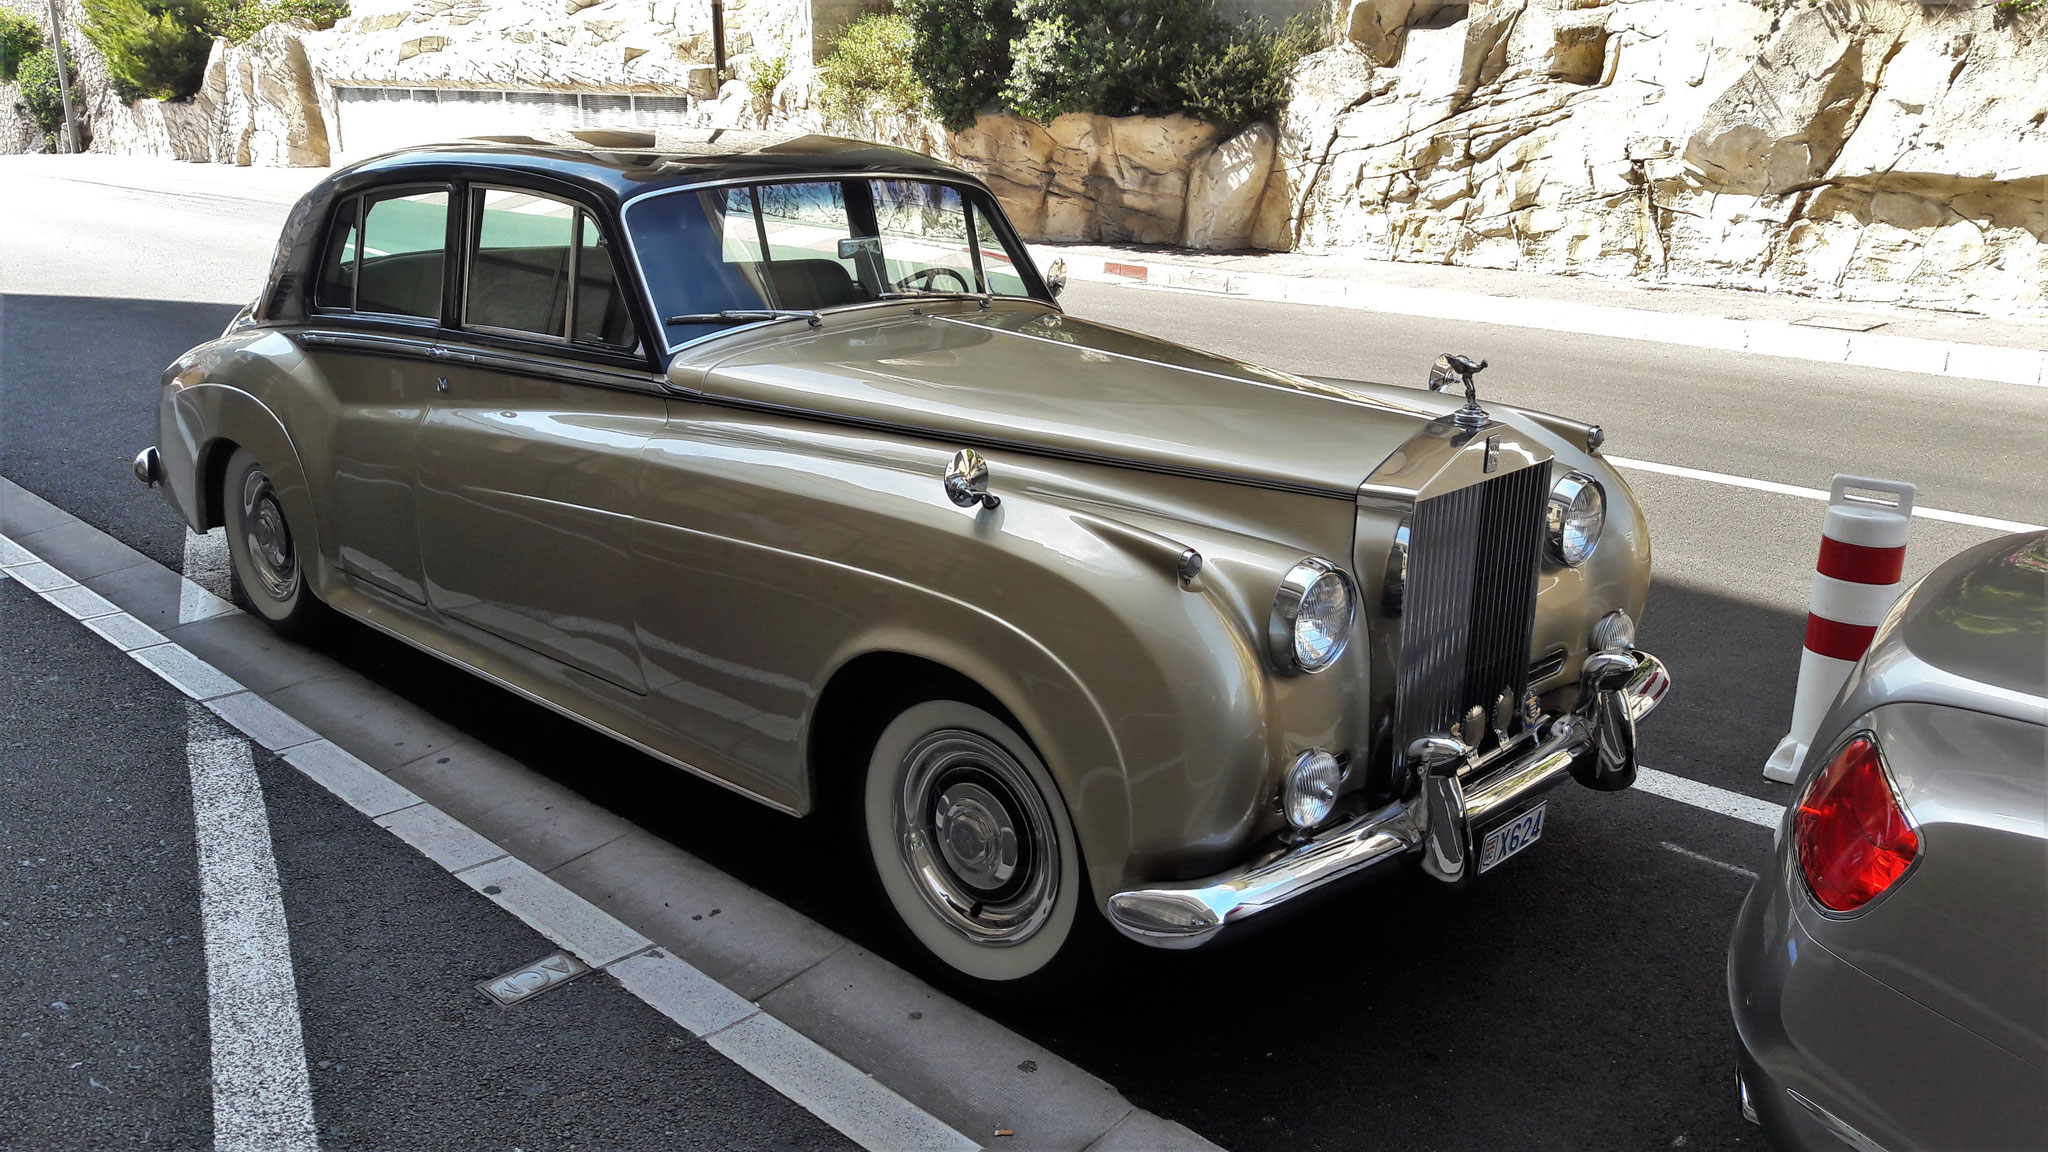 Rolls Royce Silver Cloud I - X624 (MC)